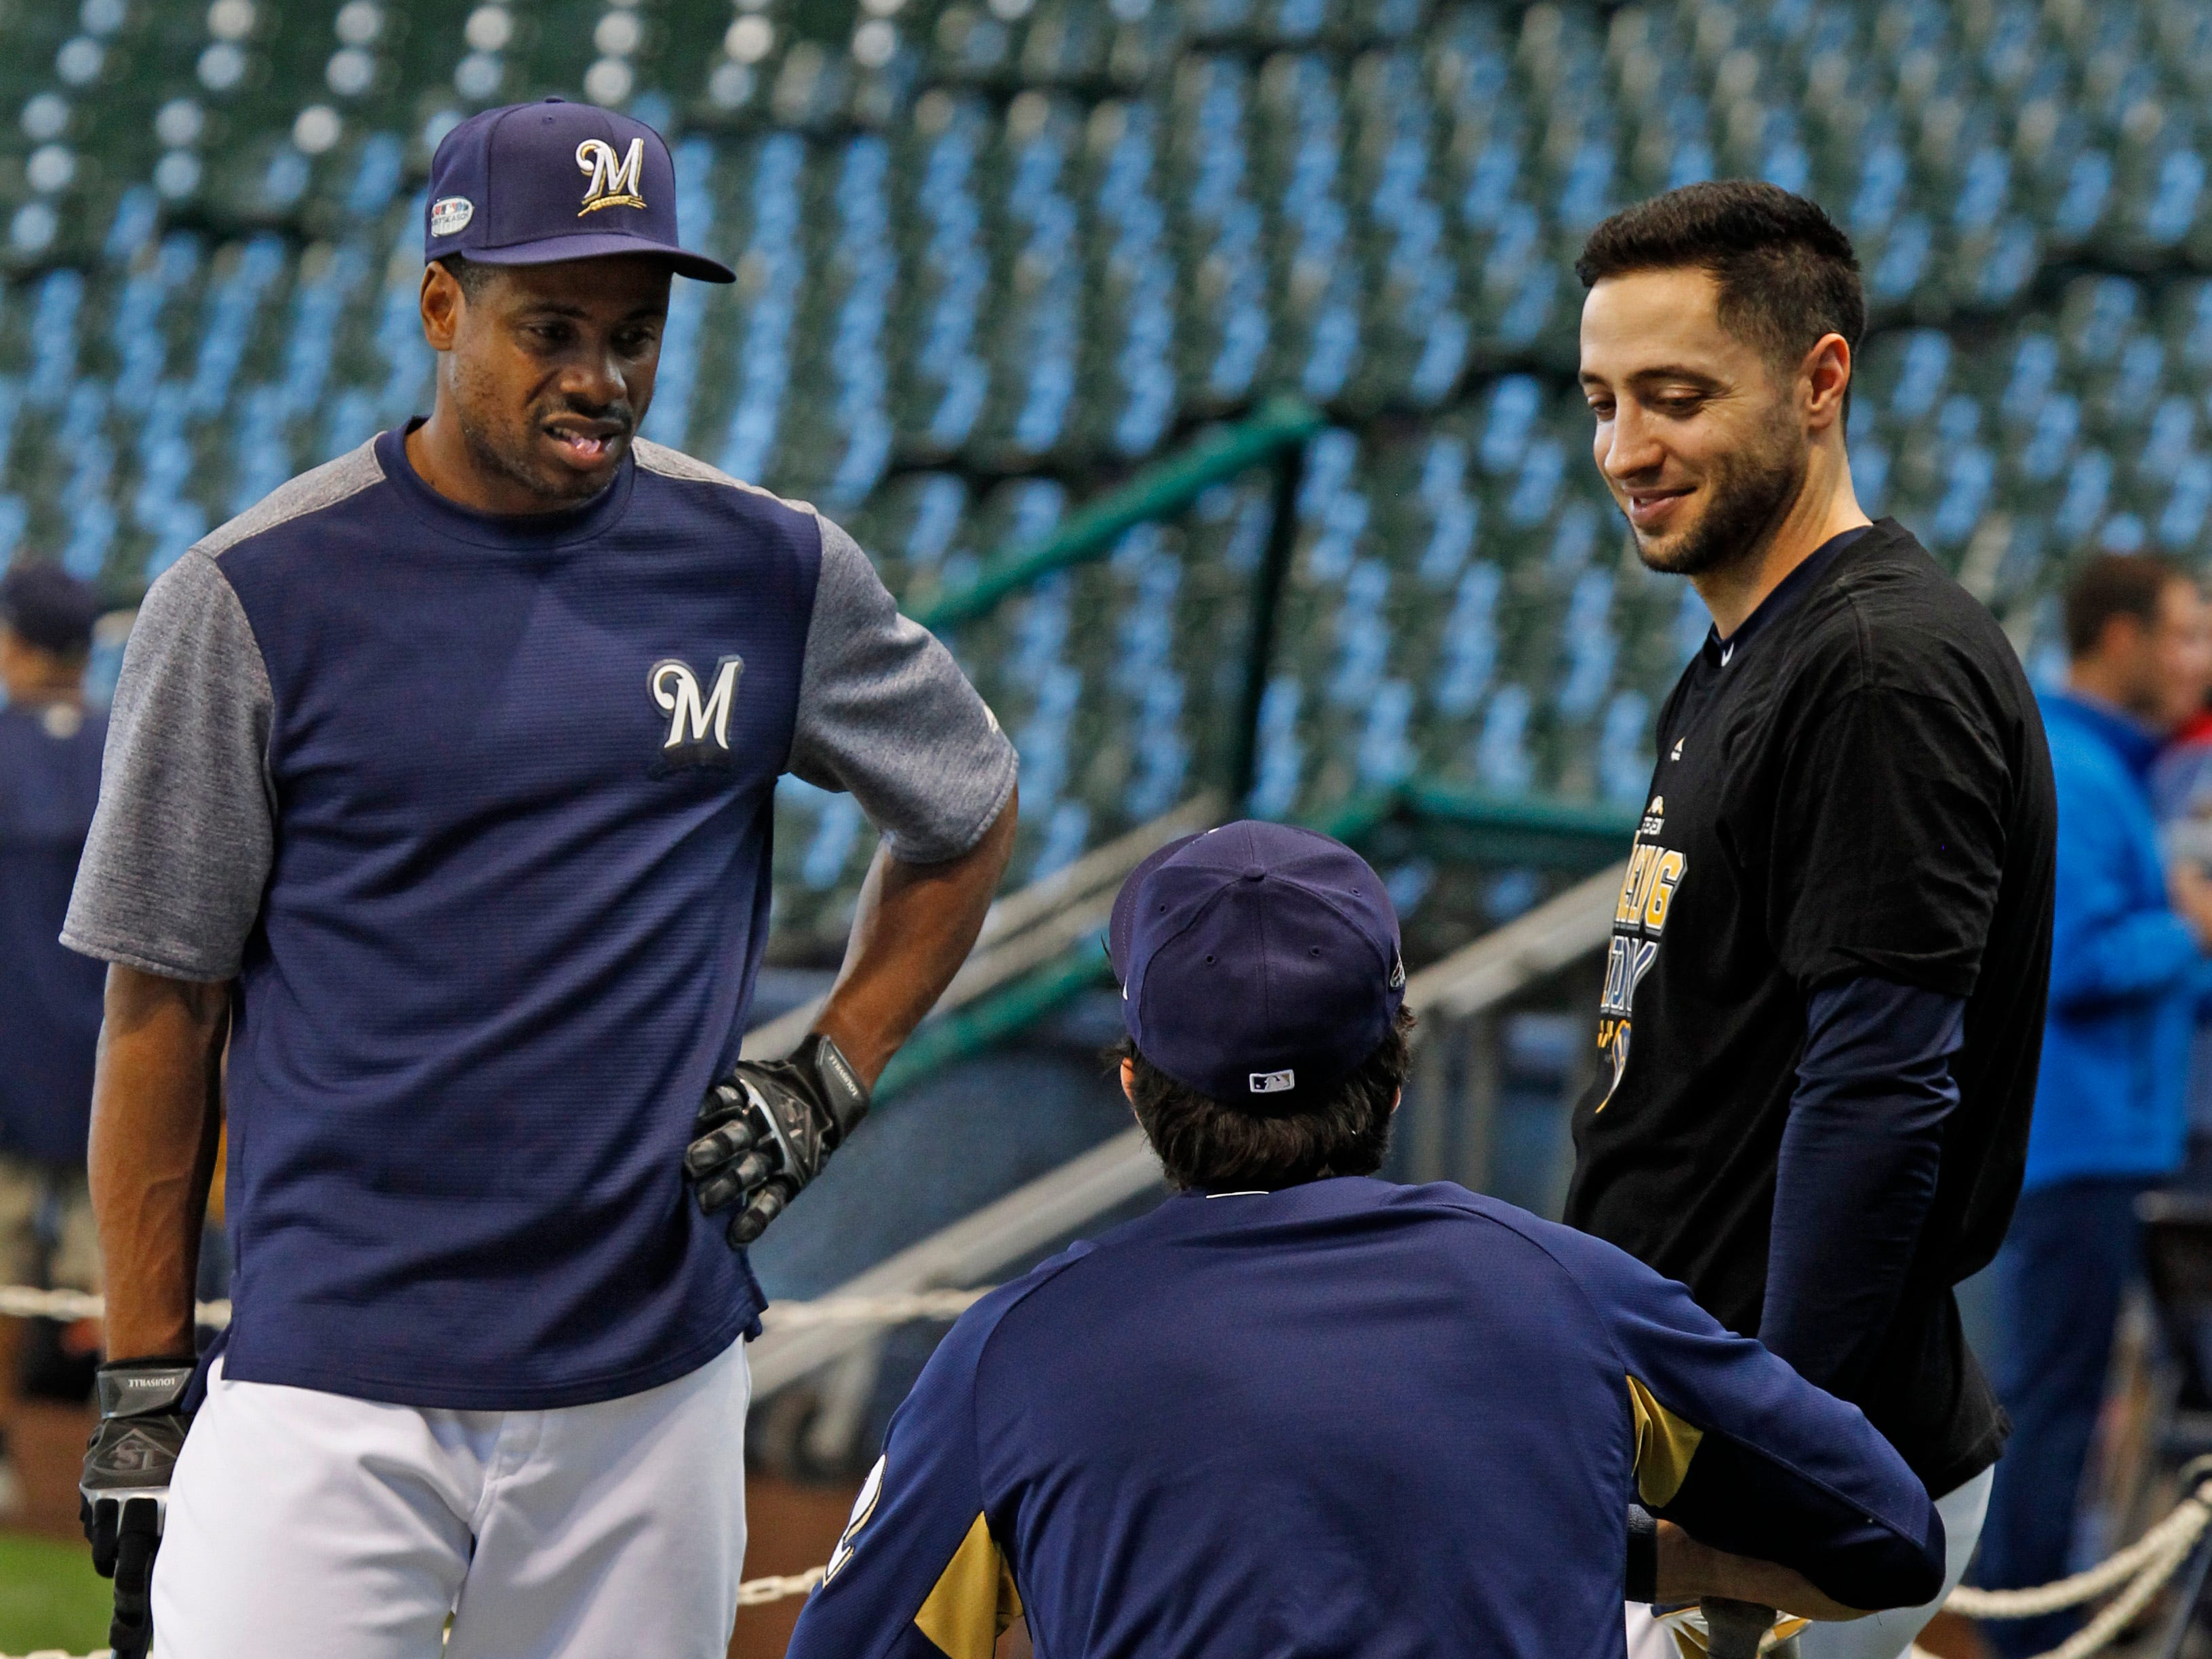 Brewers outfielders Curtis Granderson (left), Ryan Braun (right) and Christian Yelich chat during practice Wednesday, at Miller Park.